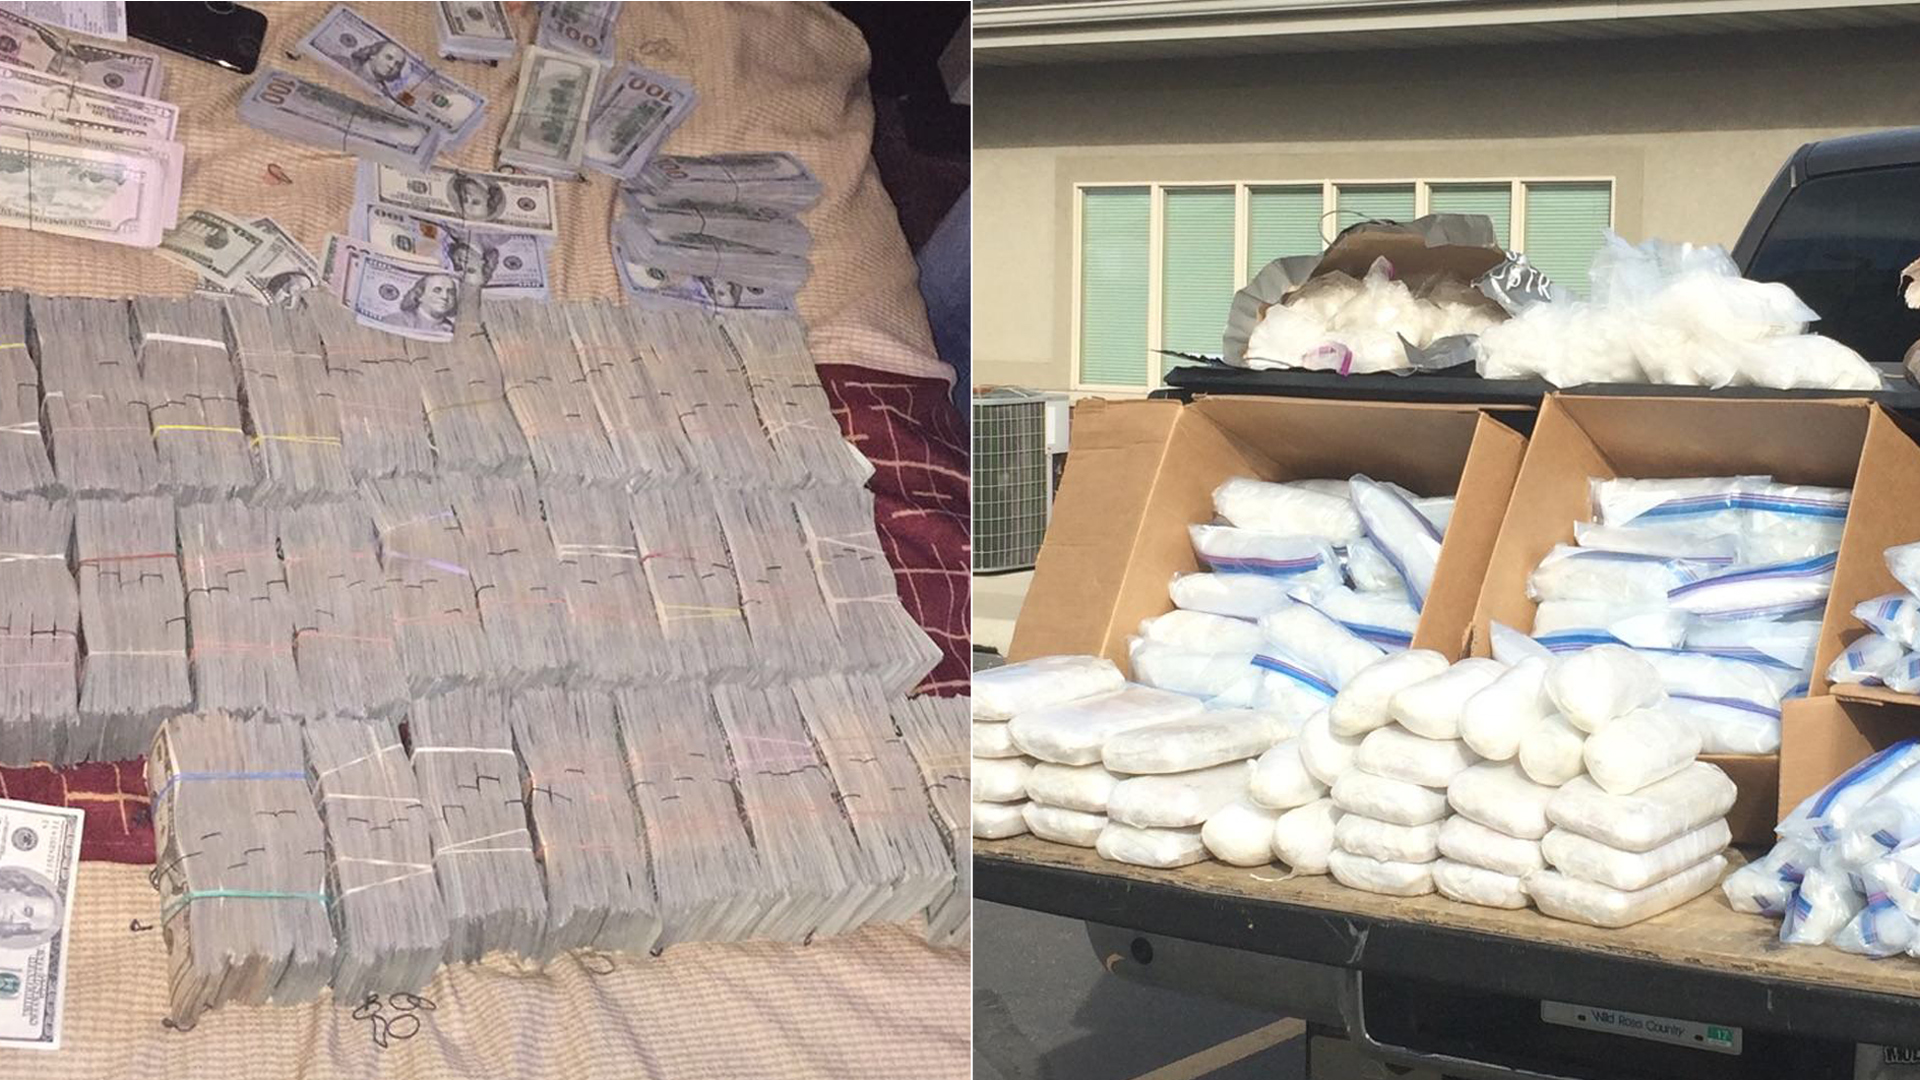 On left, stacks of cash seized during the investigation into a Mexico-L.A. drug trafficking ring are pictured. Bundles of narcotics are seen on the right. The photos were released by the U.S. Department of Justice on May 30, 2019.